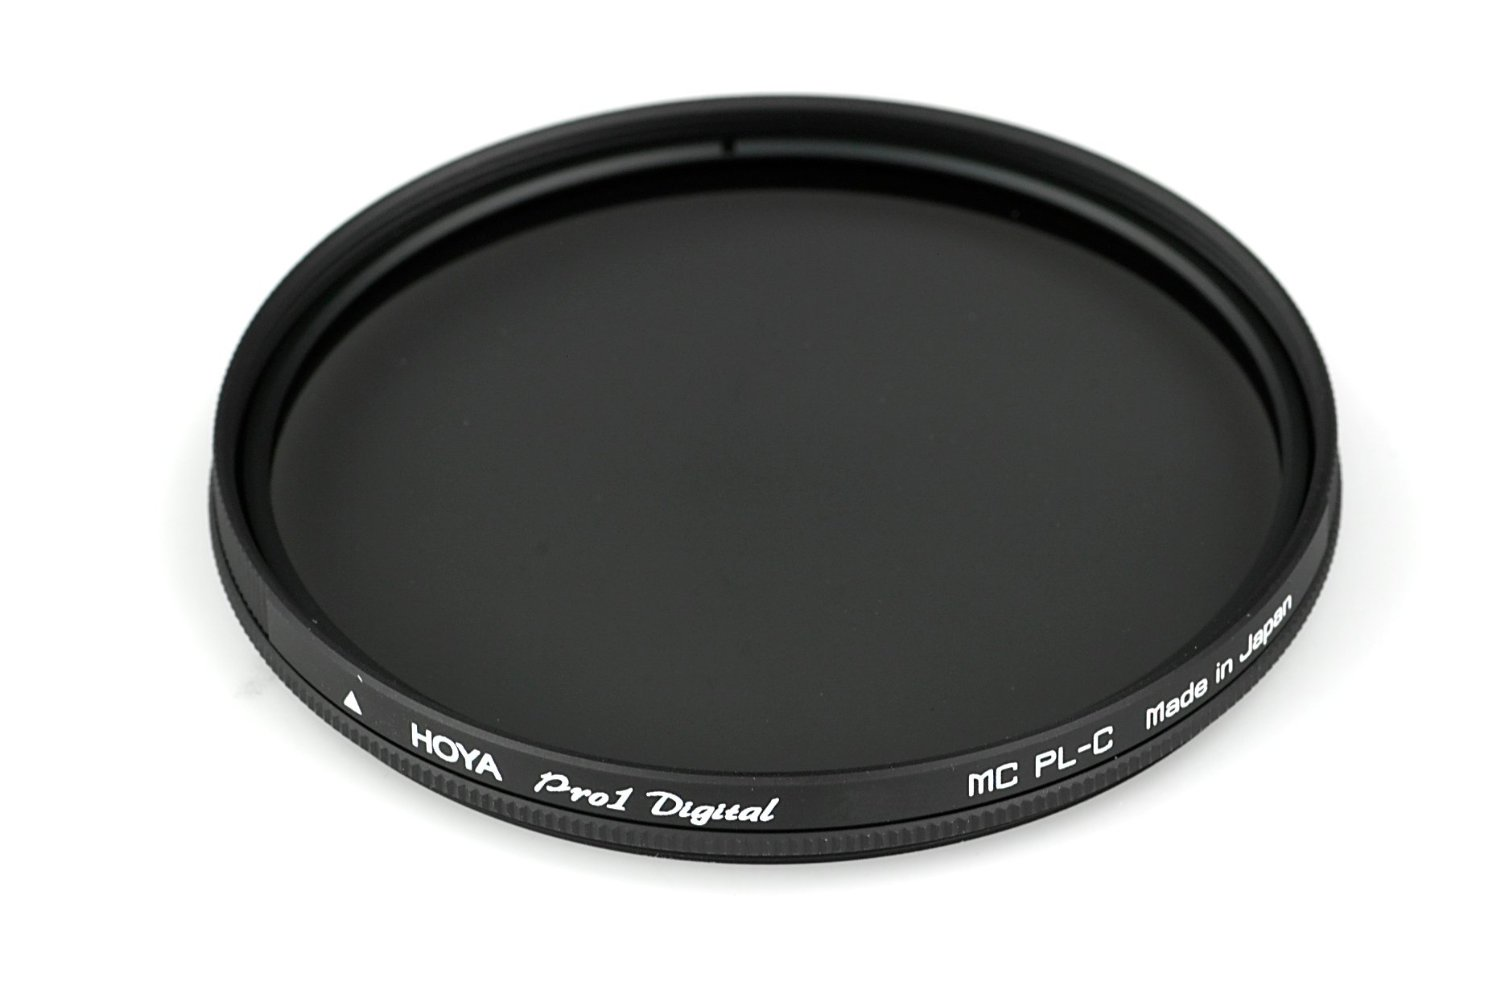 Светофильтр Hoya PL-CIR PRO1 Digital 52 mm